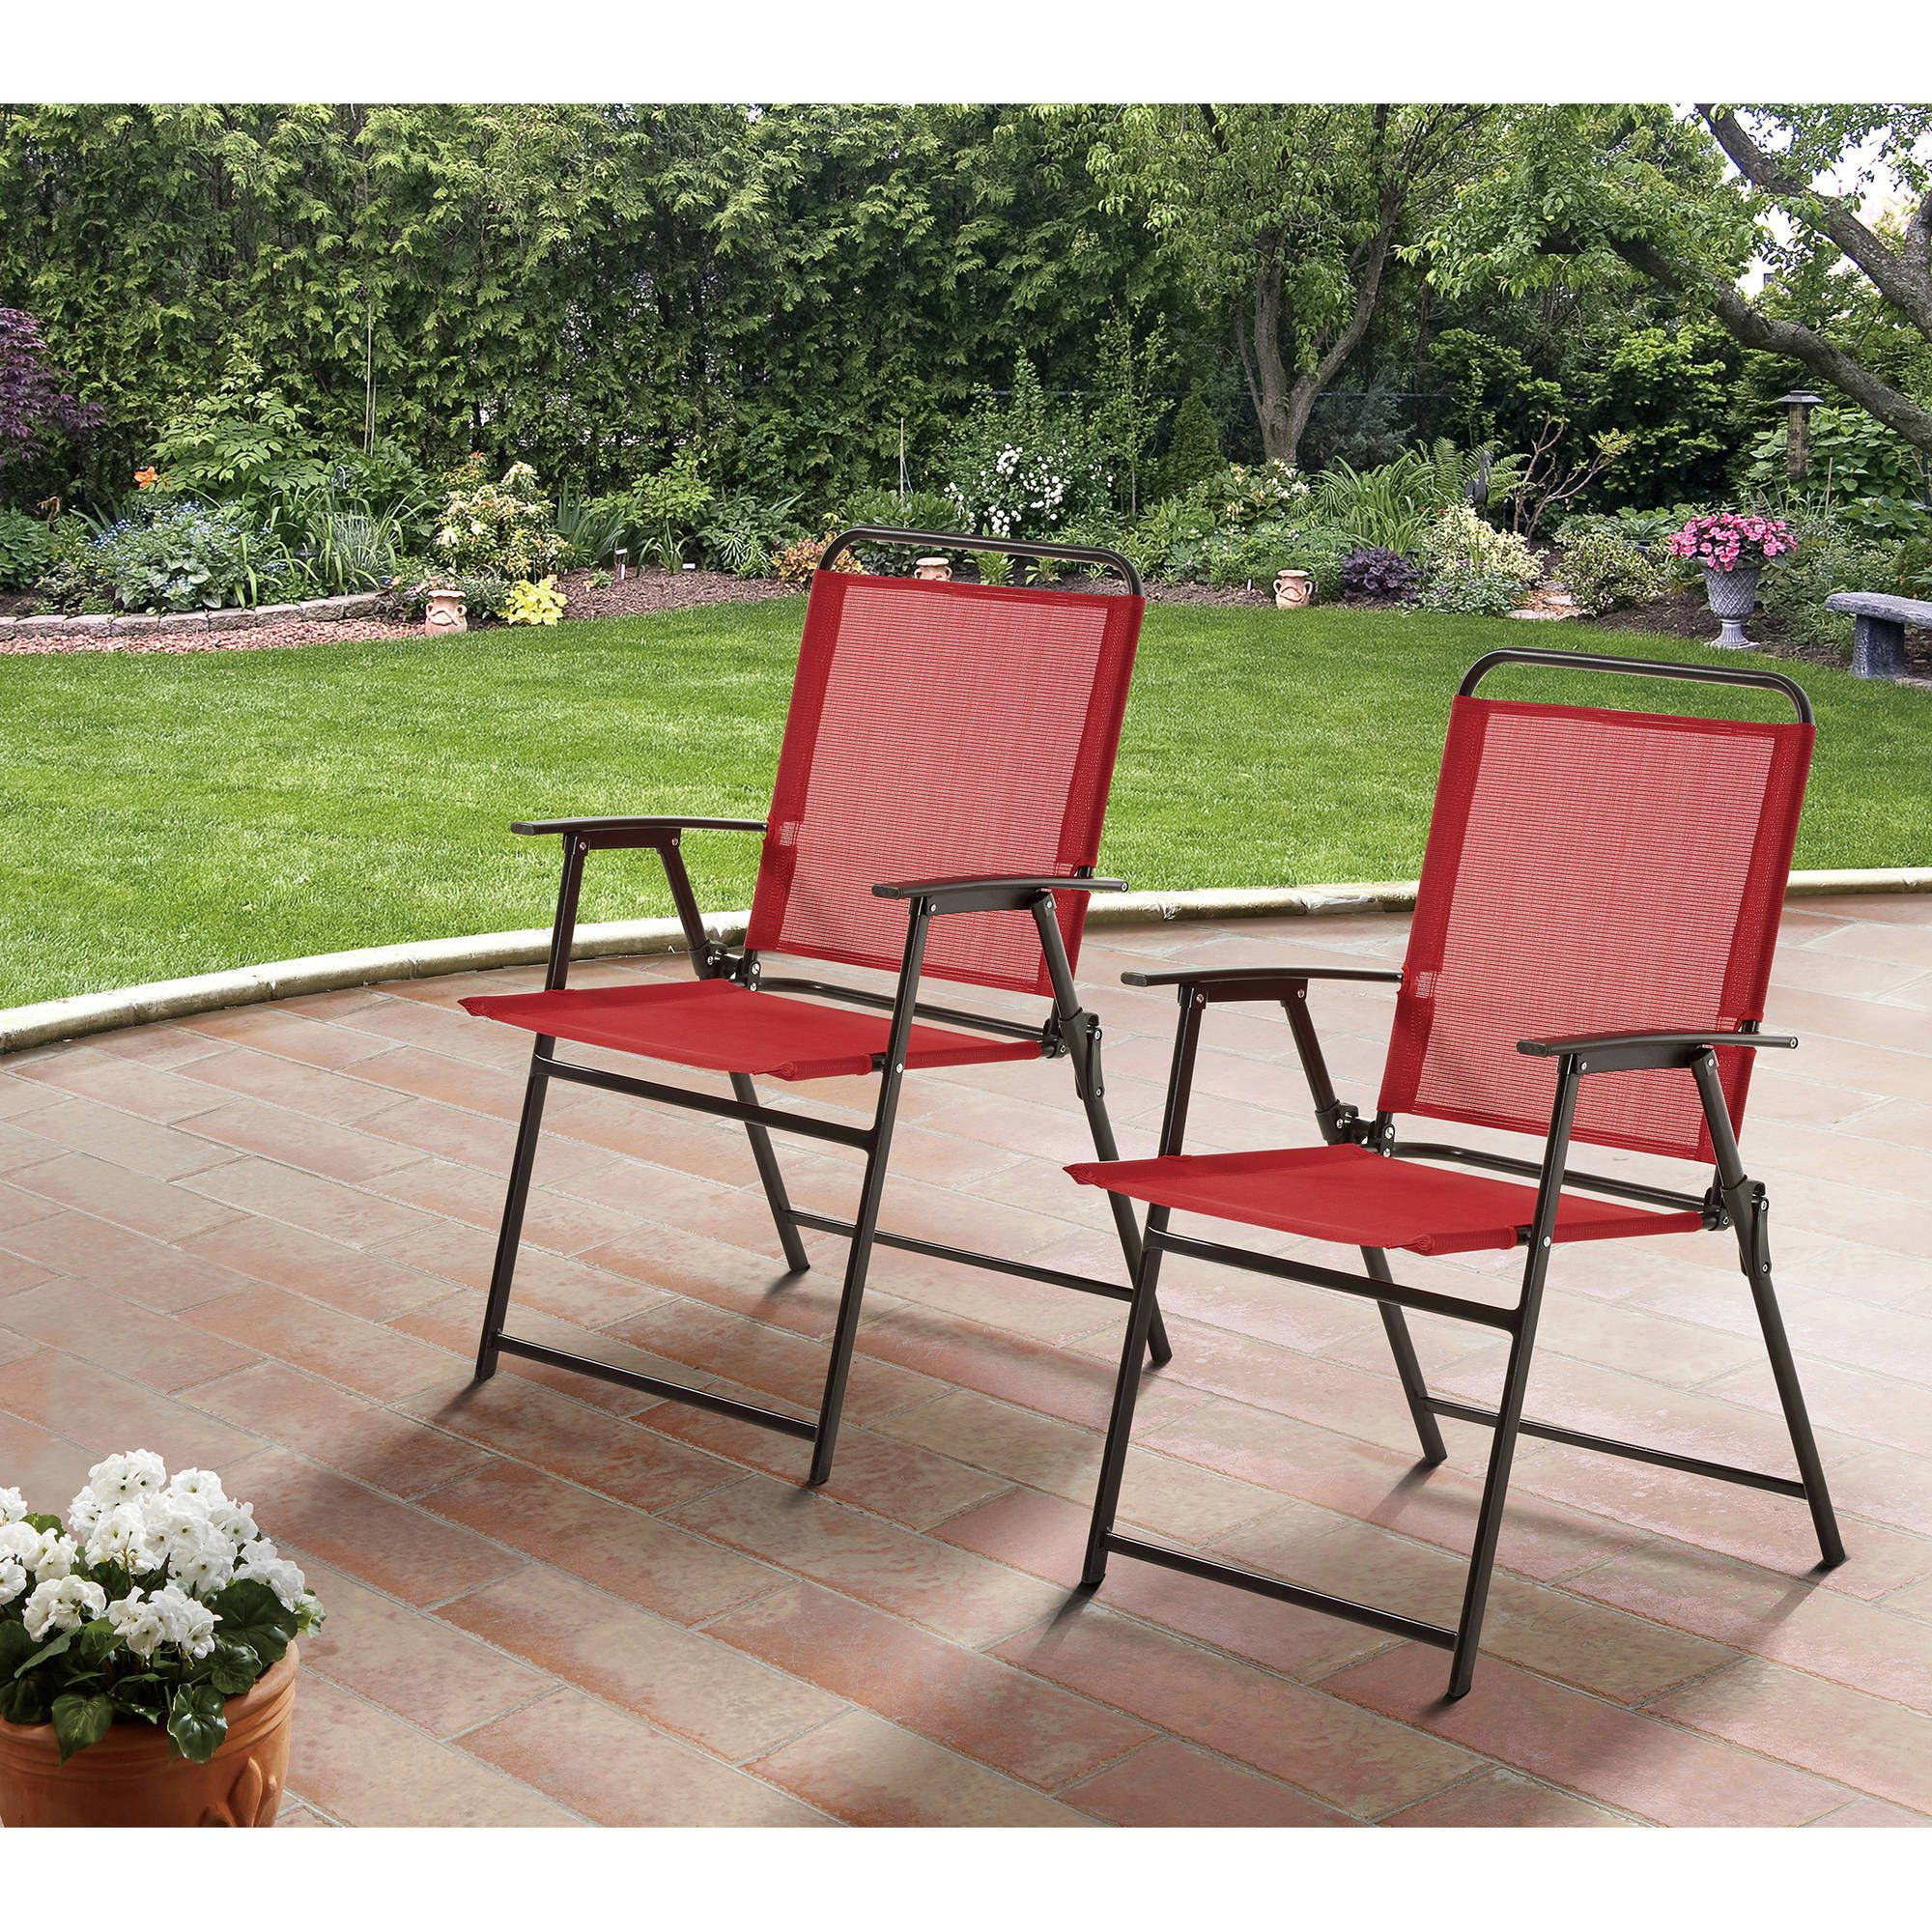 Remarkable Mainstays Pleasant Grove Sling Folding Chair Set Of 2 In Alphanode Cool Chair Designs And Ideas Alphanodeonline